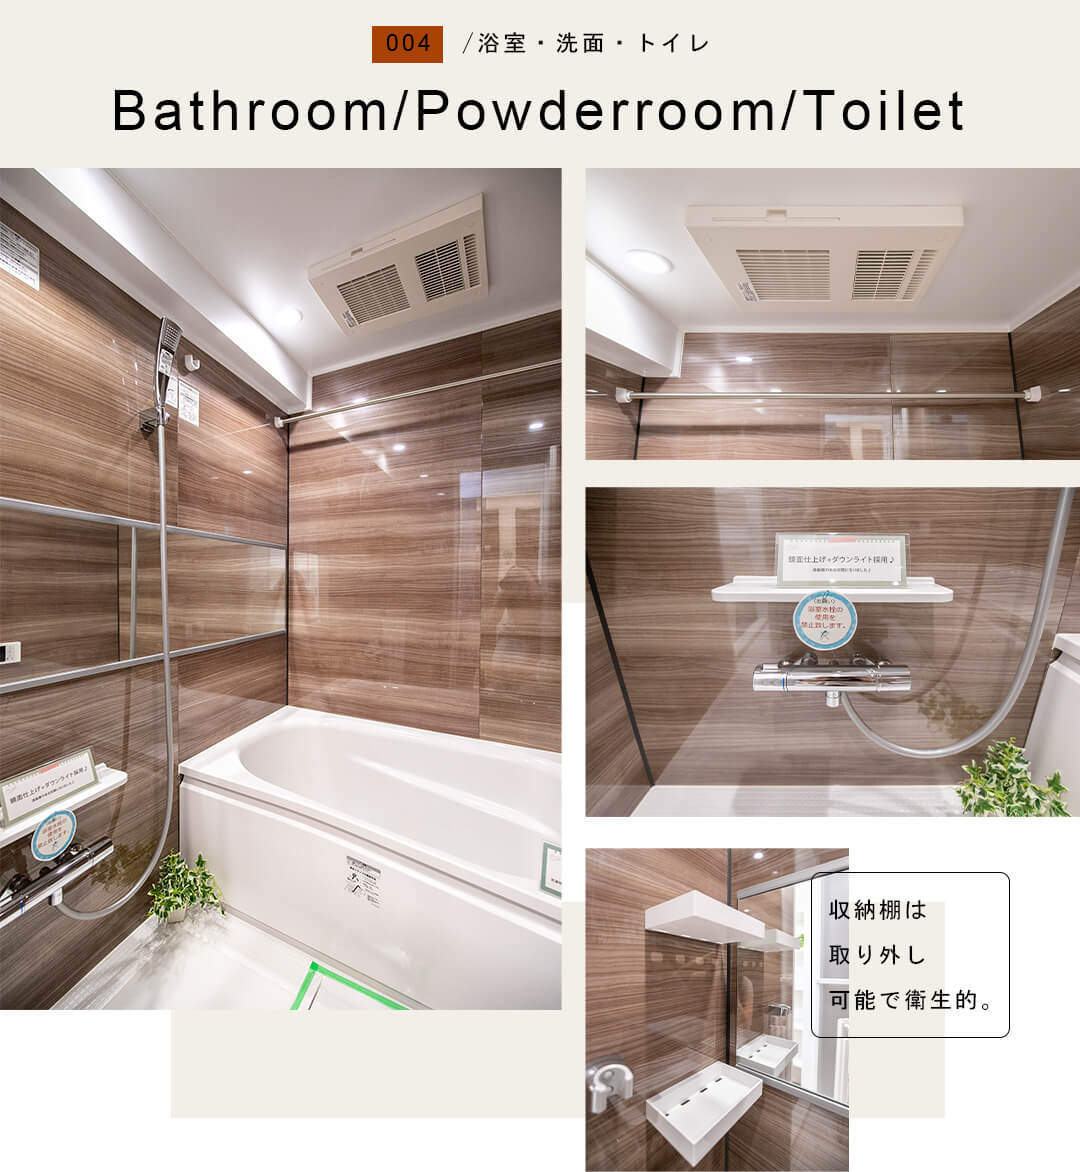 004浴室,洗面,トイレ,Bathroom,Powderroom,Toilet